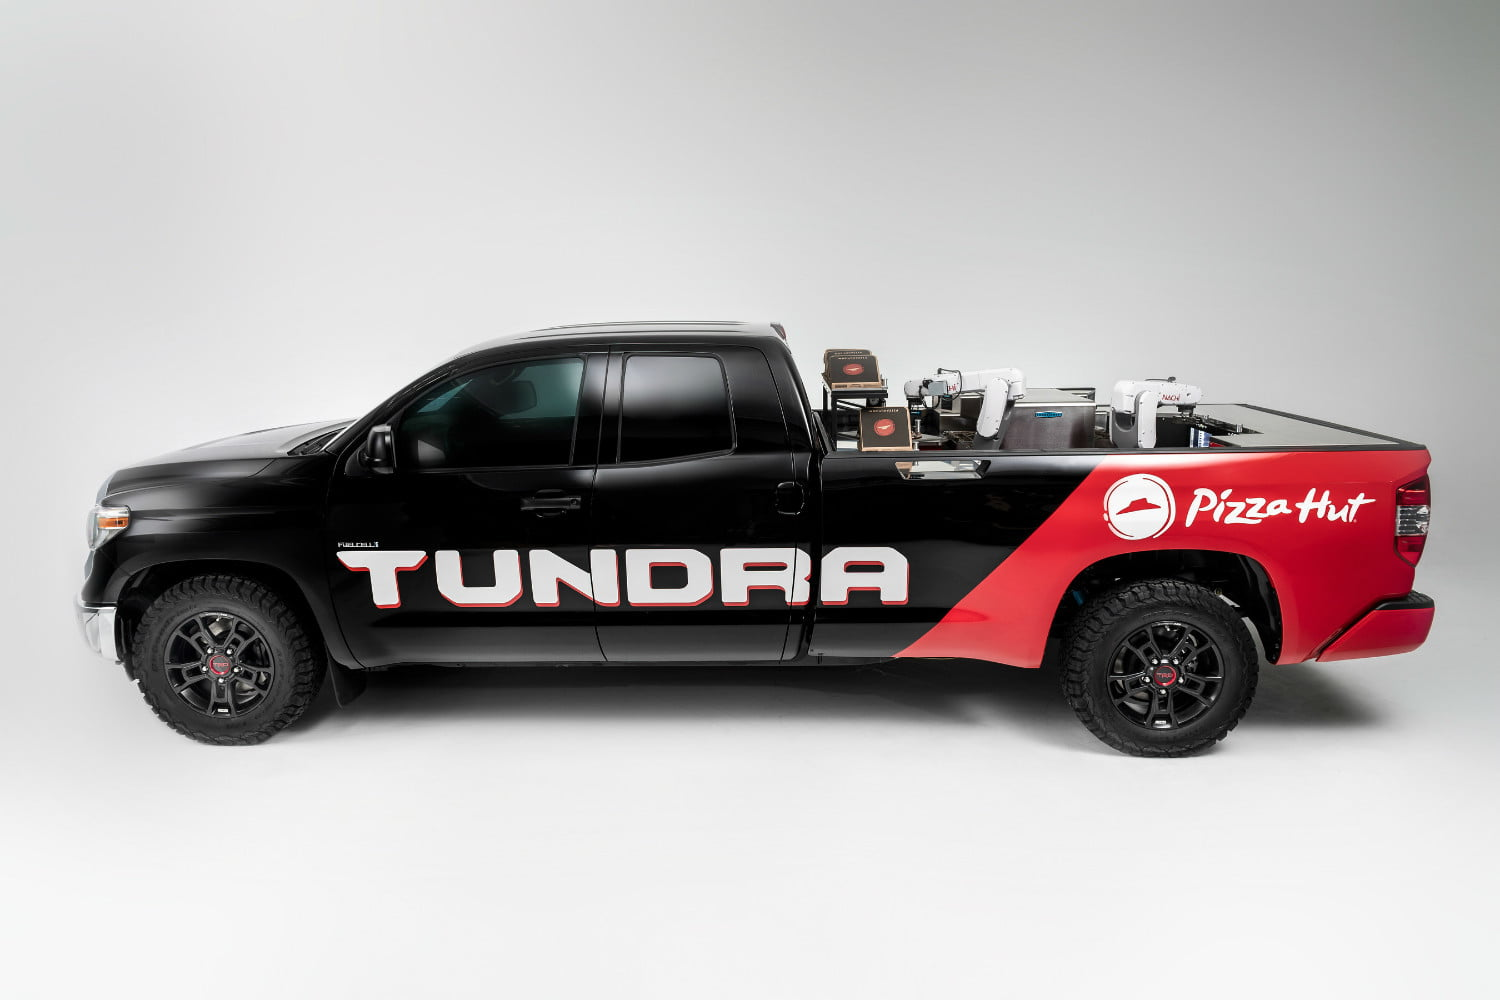 Pizza Hut tricks out a Toyota Tundra to whip up a pie in 7 minutes